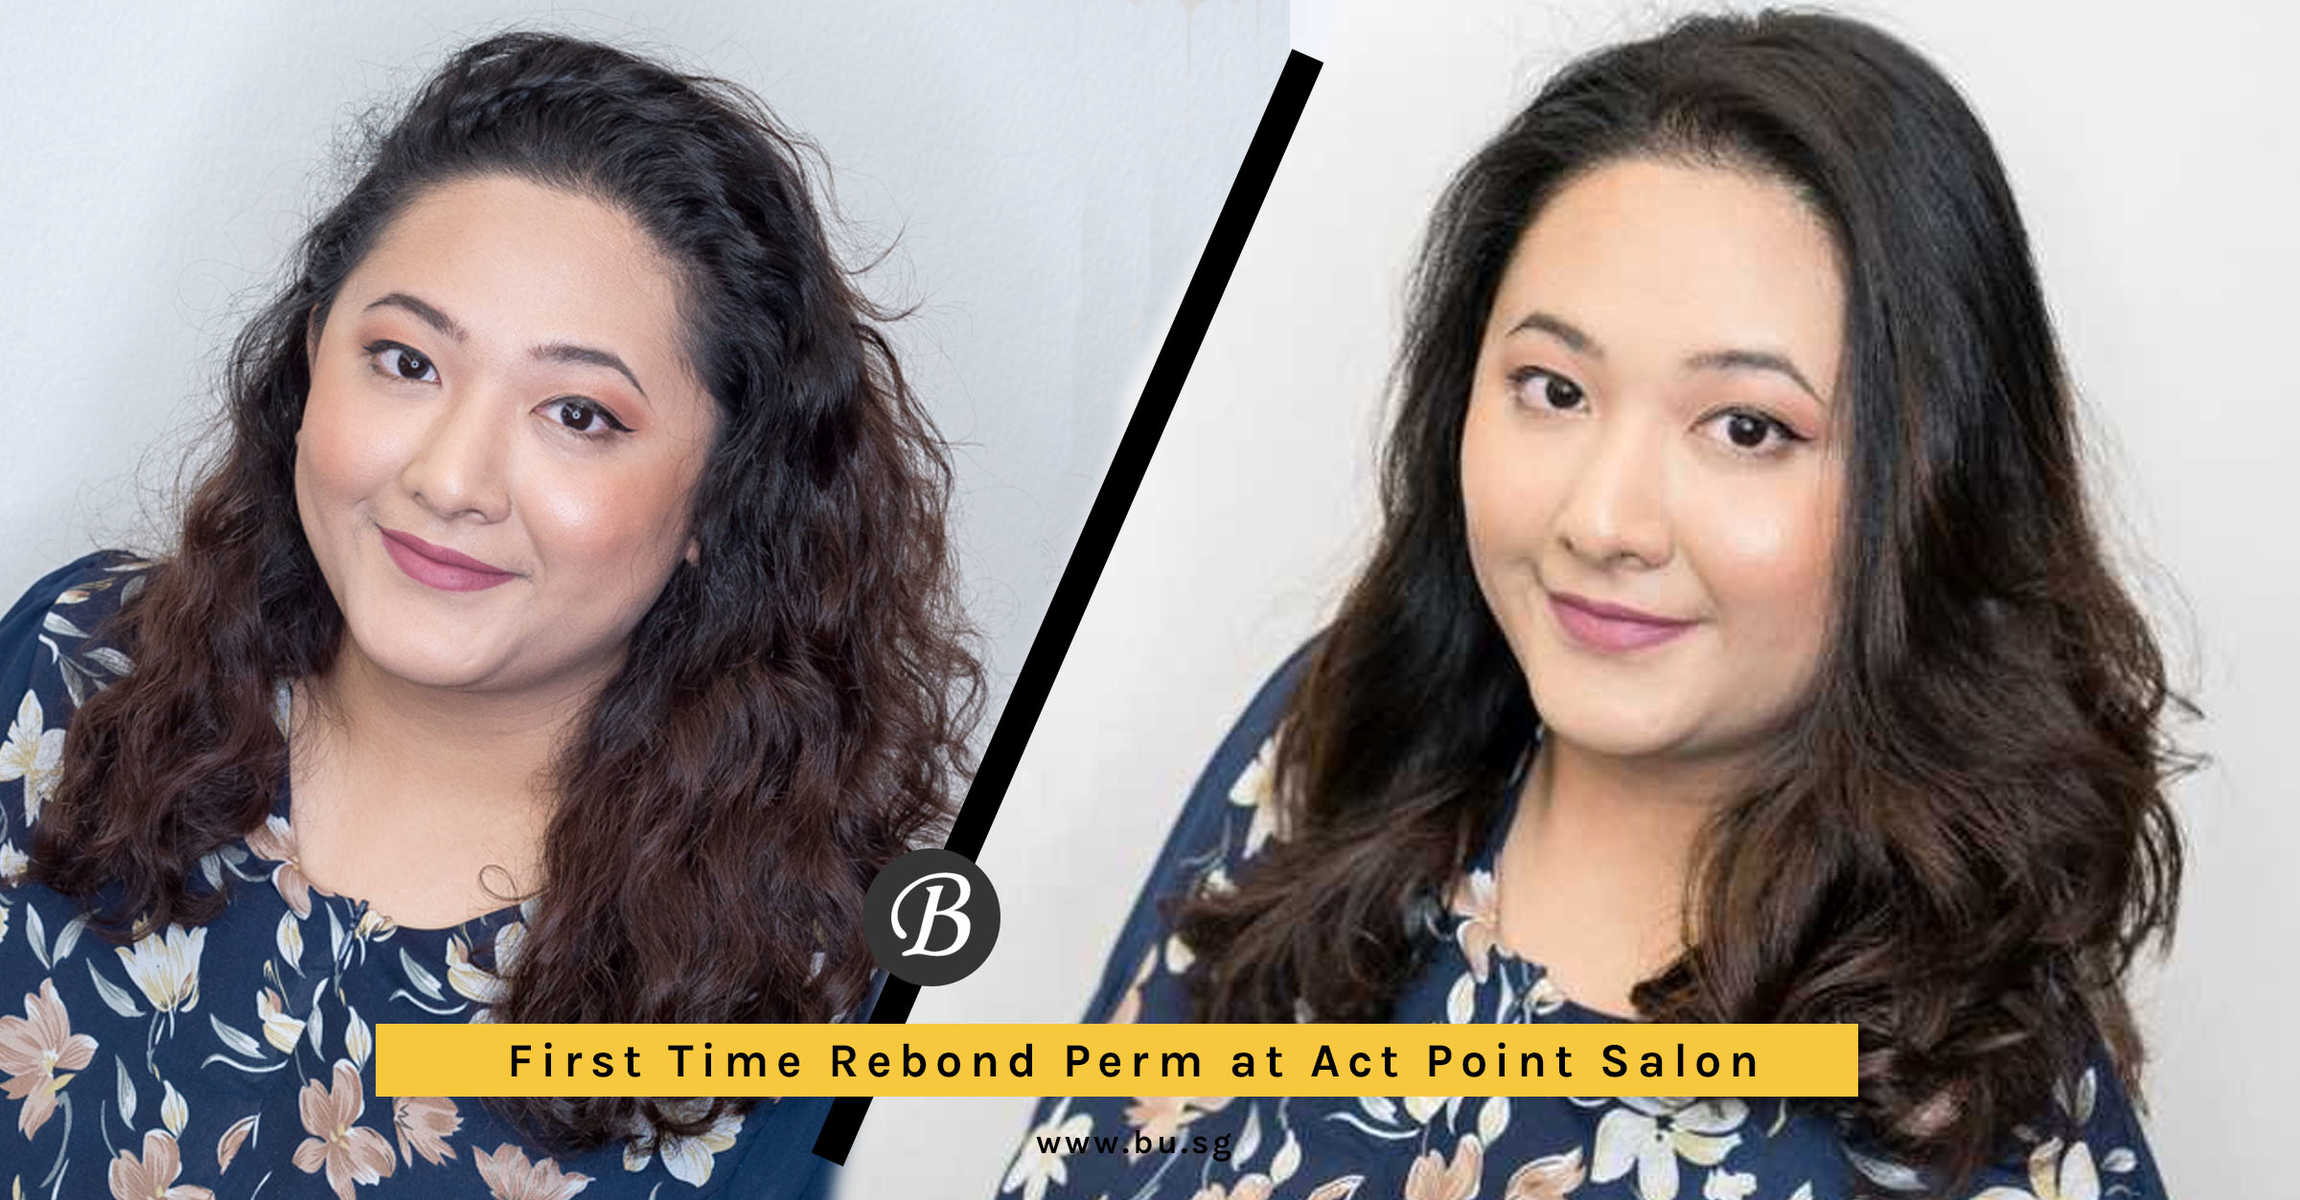 Agent SK Did Rebond Perm for The First Time for Hari Raya at Act Point Salon